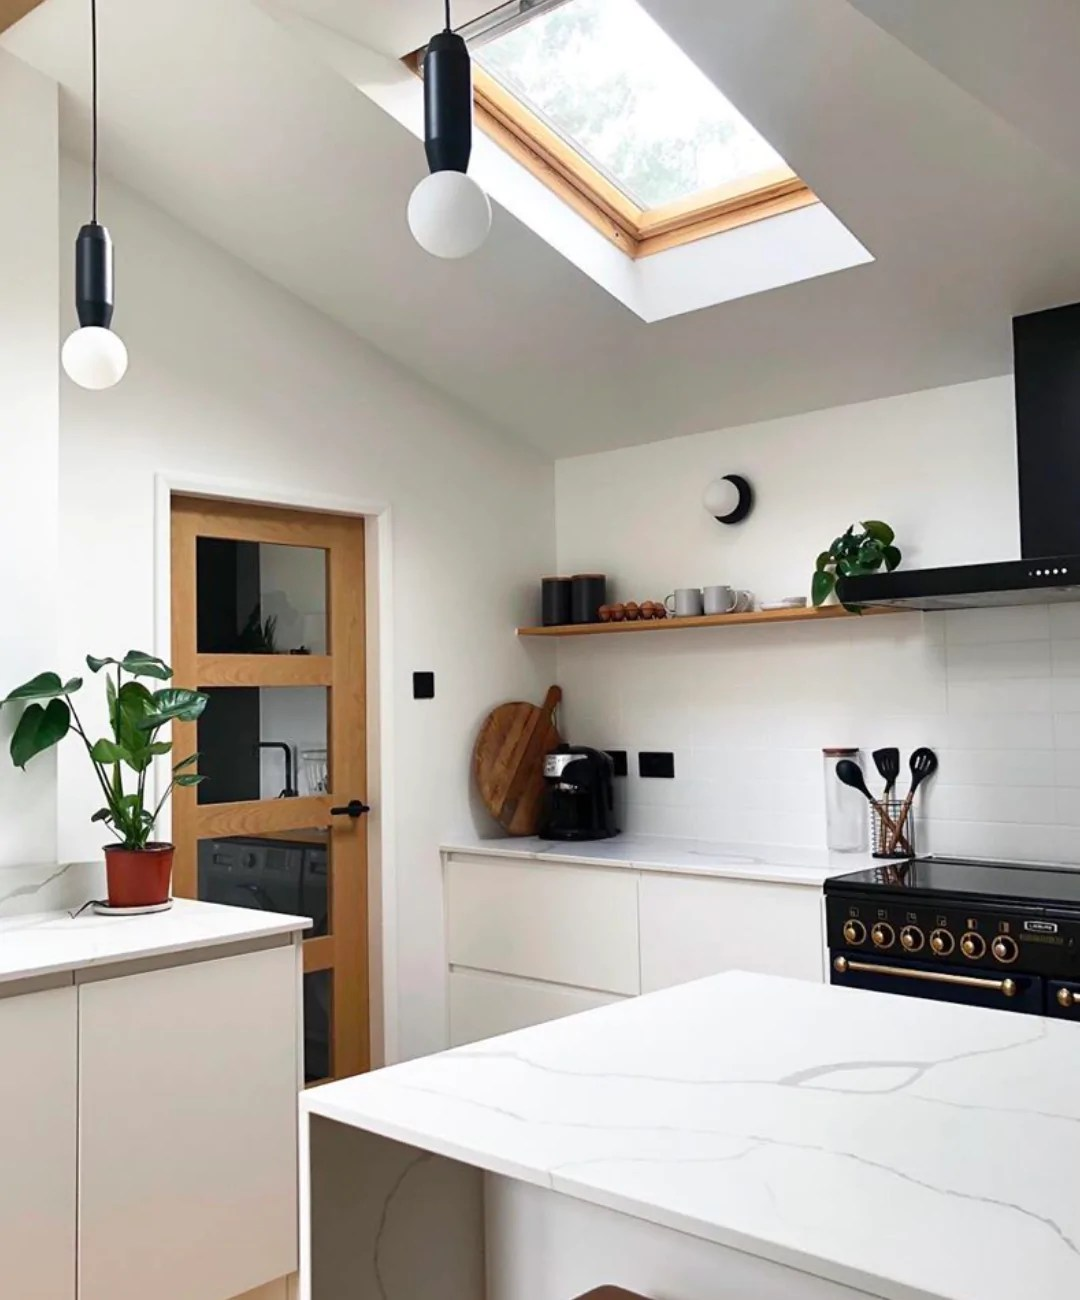 sloped ceilings and tight spaces